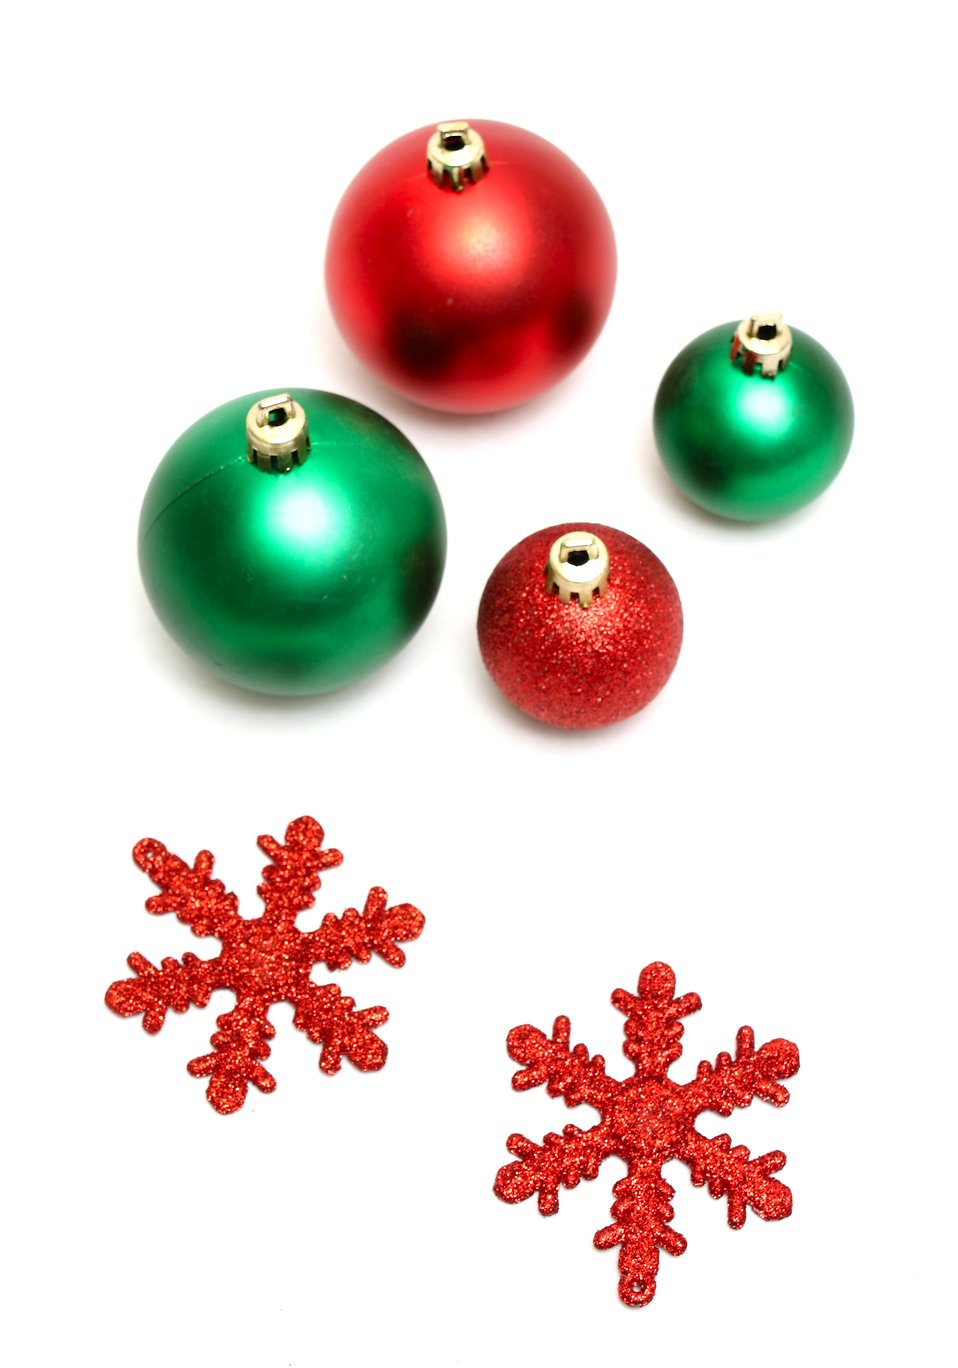 Green and red Christmas ornaments isolated on a white background : Free Stock Photo